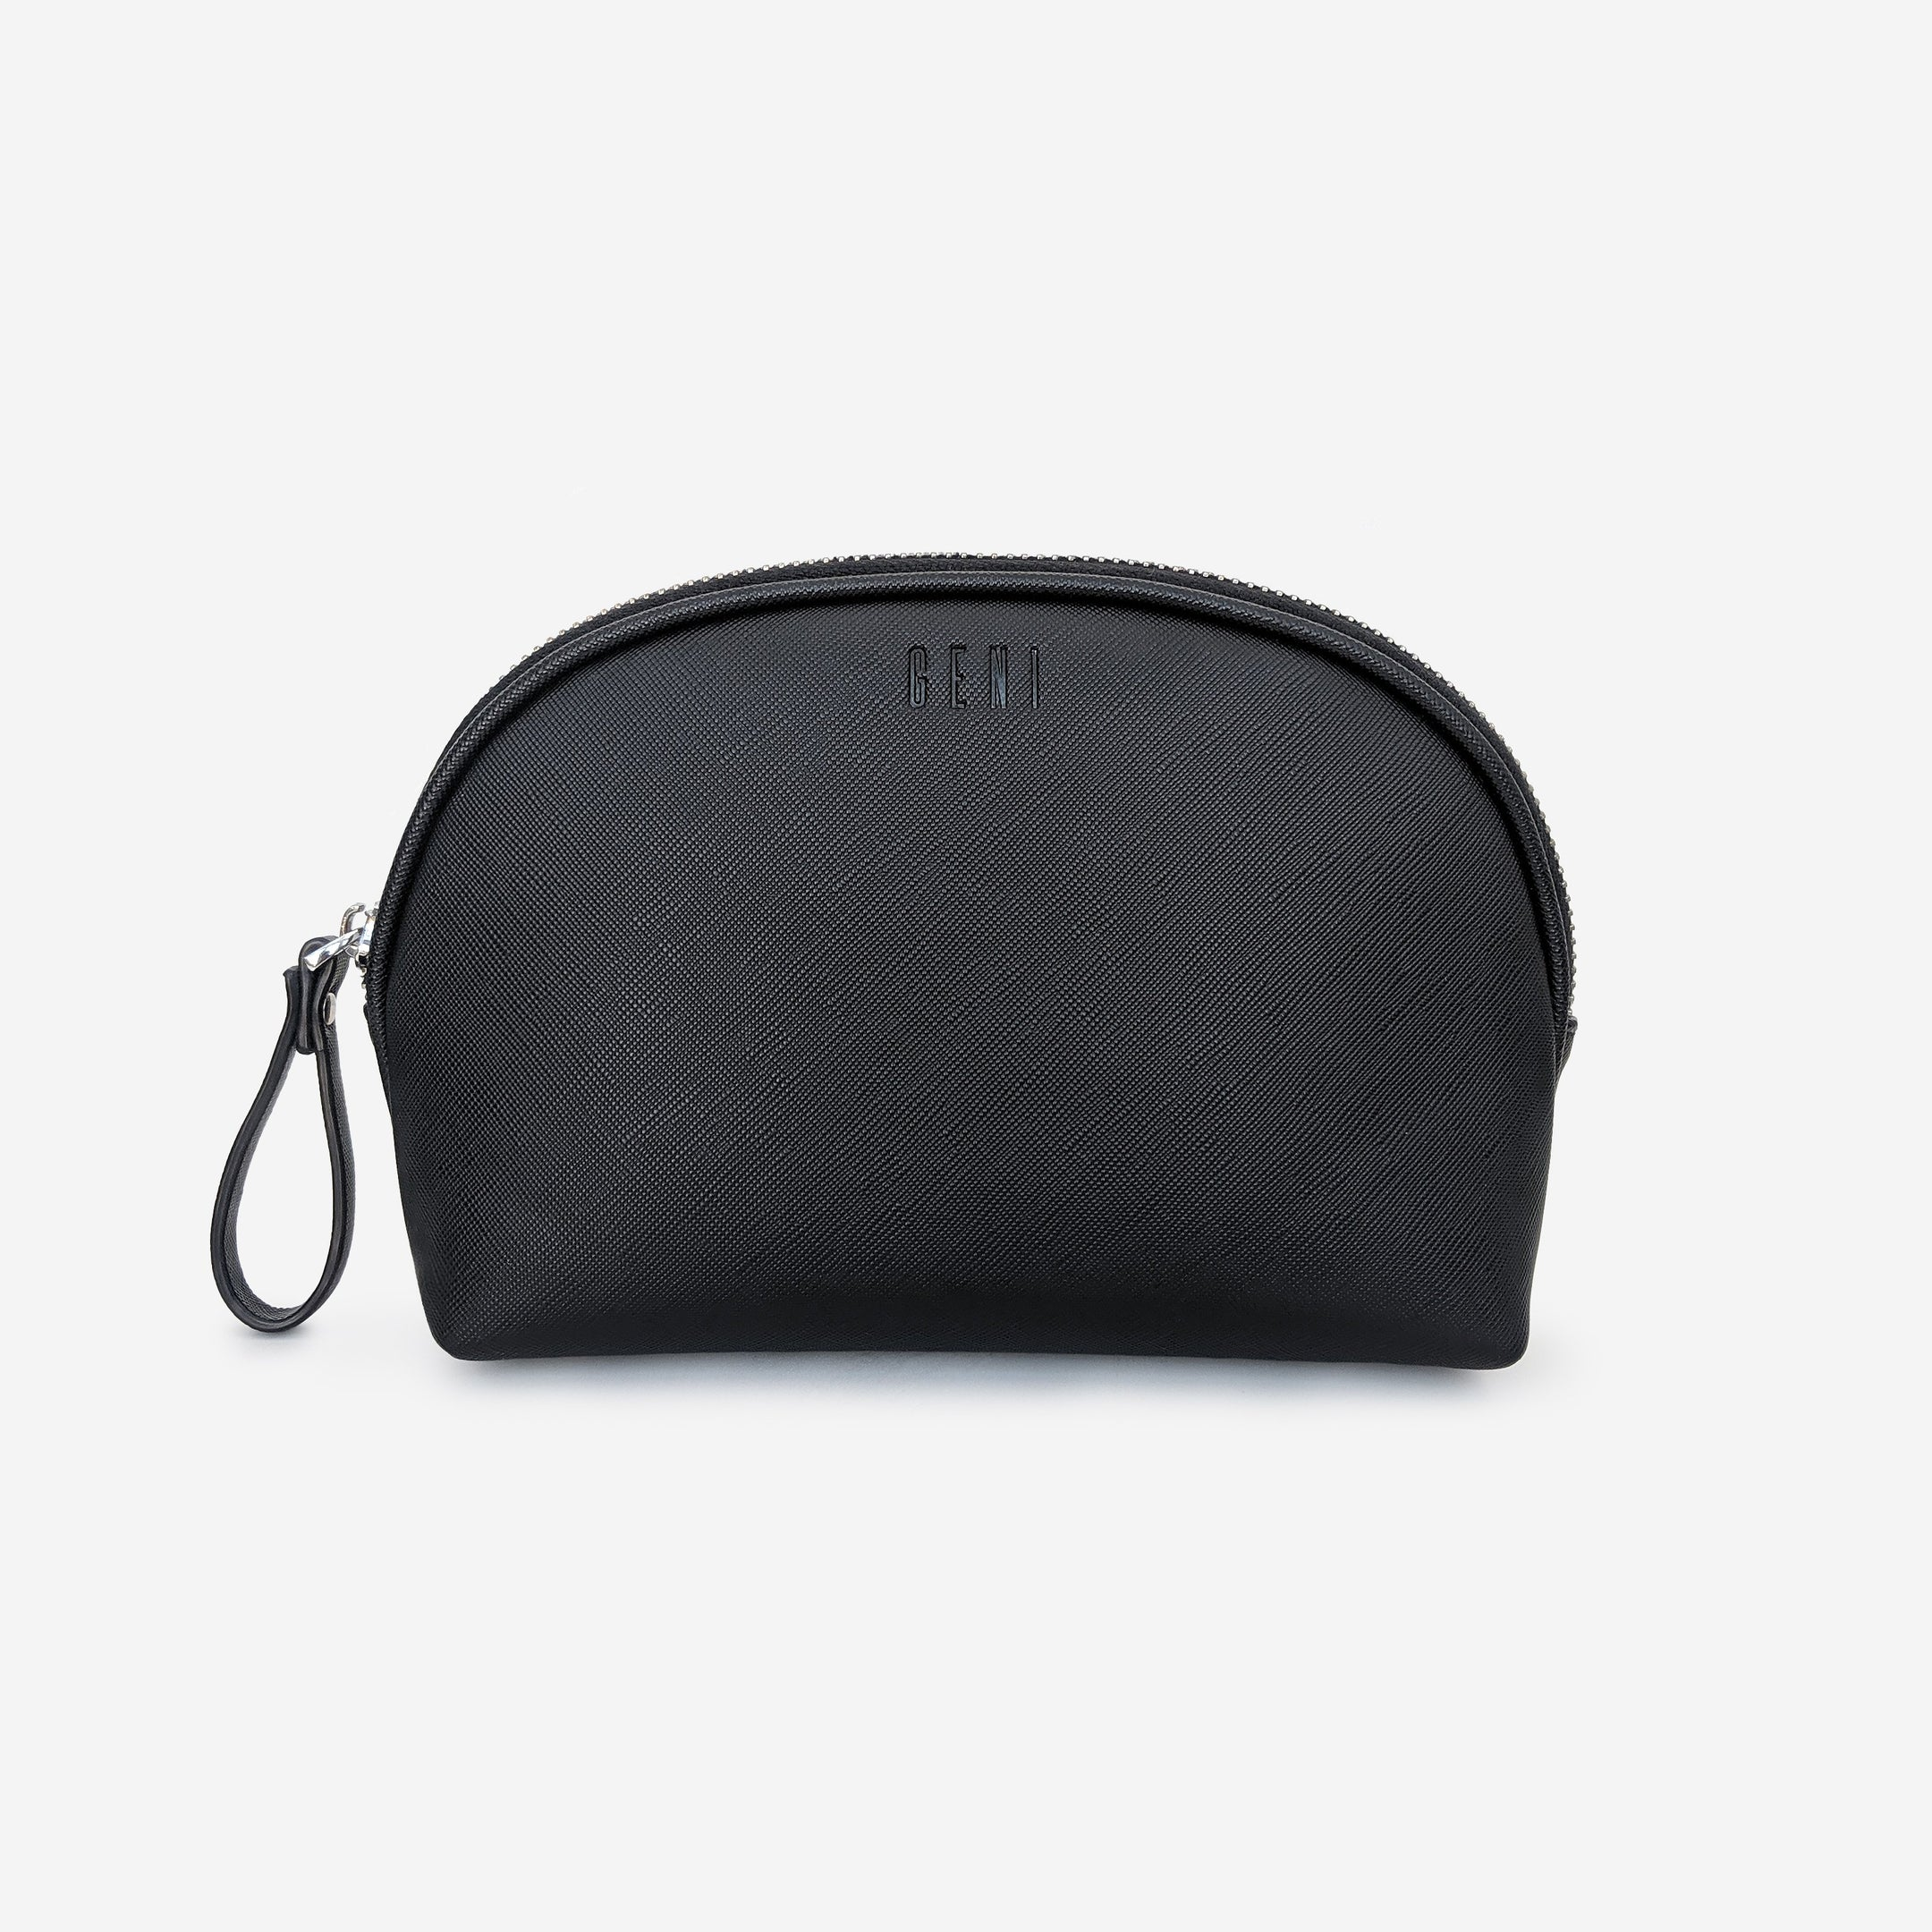 Black leather makeup bag by Geni